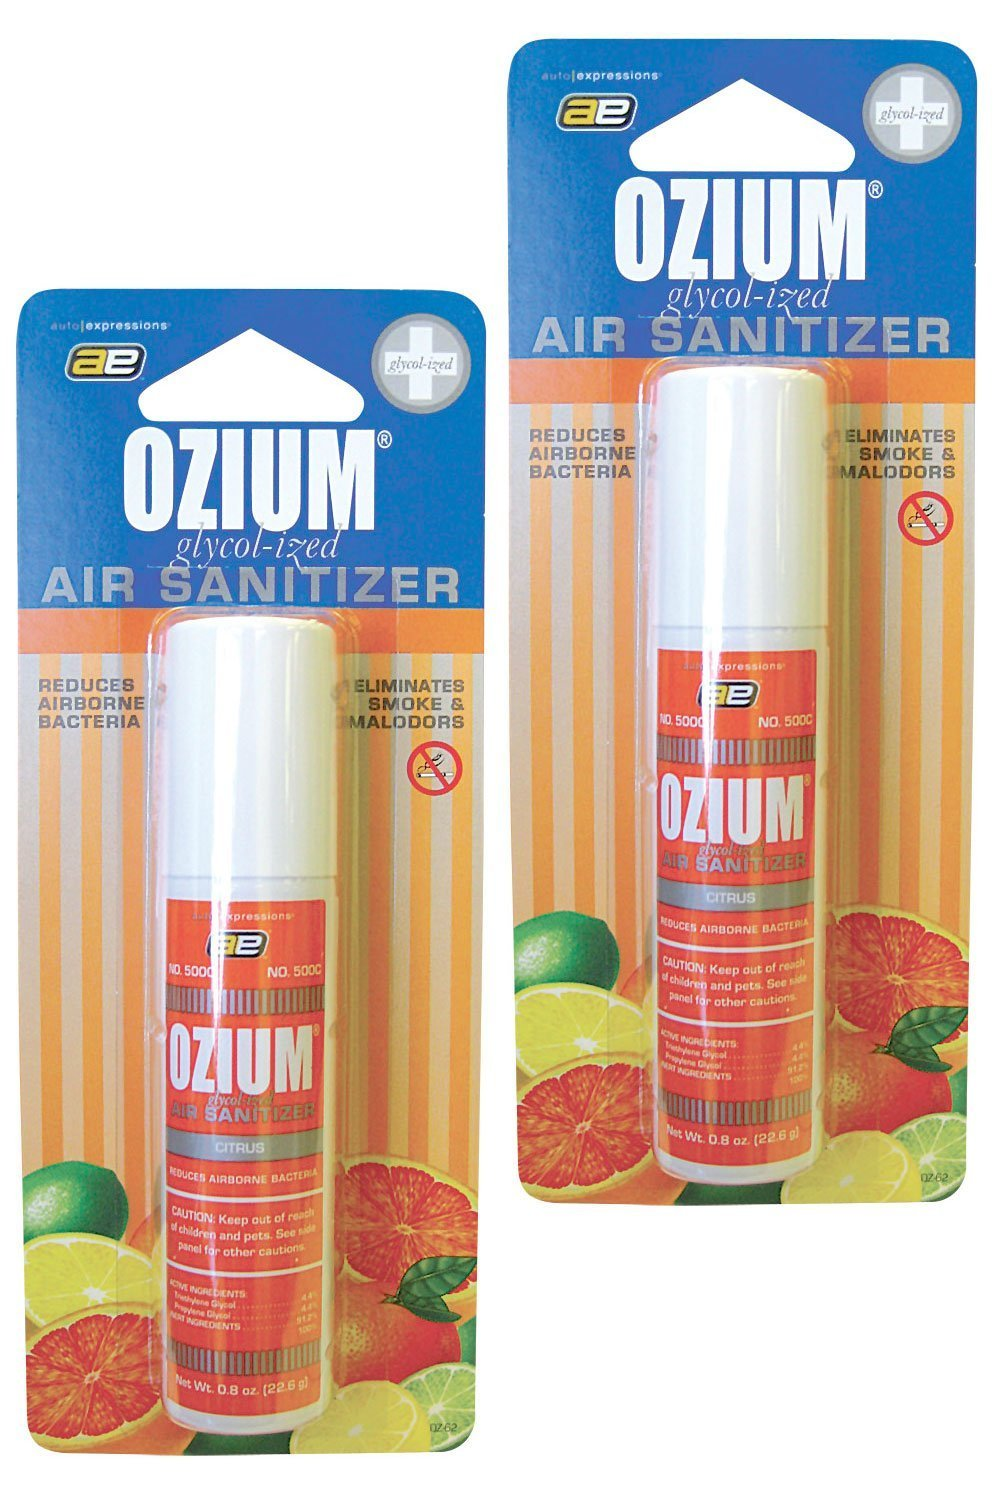 Ozium Smoke & Odor Eliminator Car & Home Air Sanitizer / Freshener, 0.8oz Spray Citrus - Pack of 2 Kraco